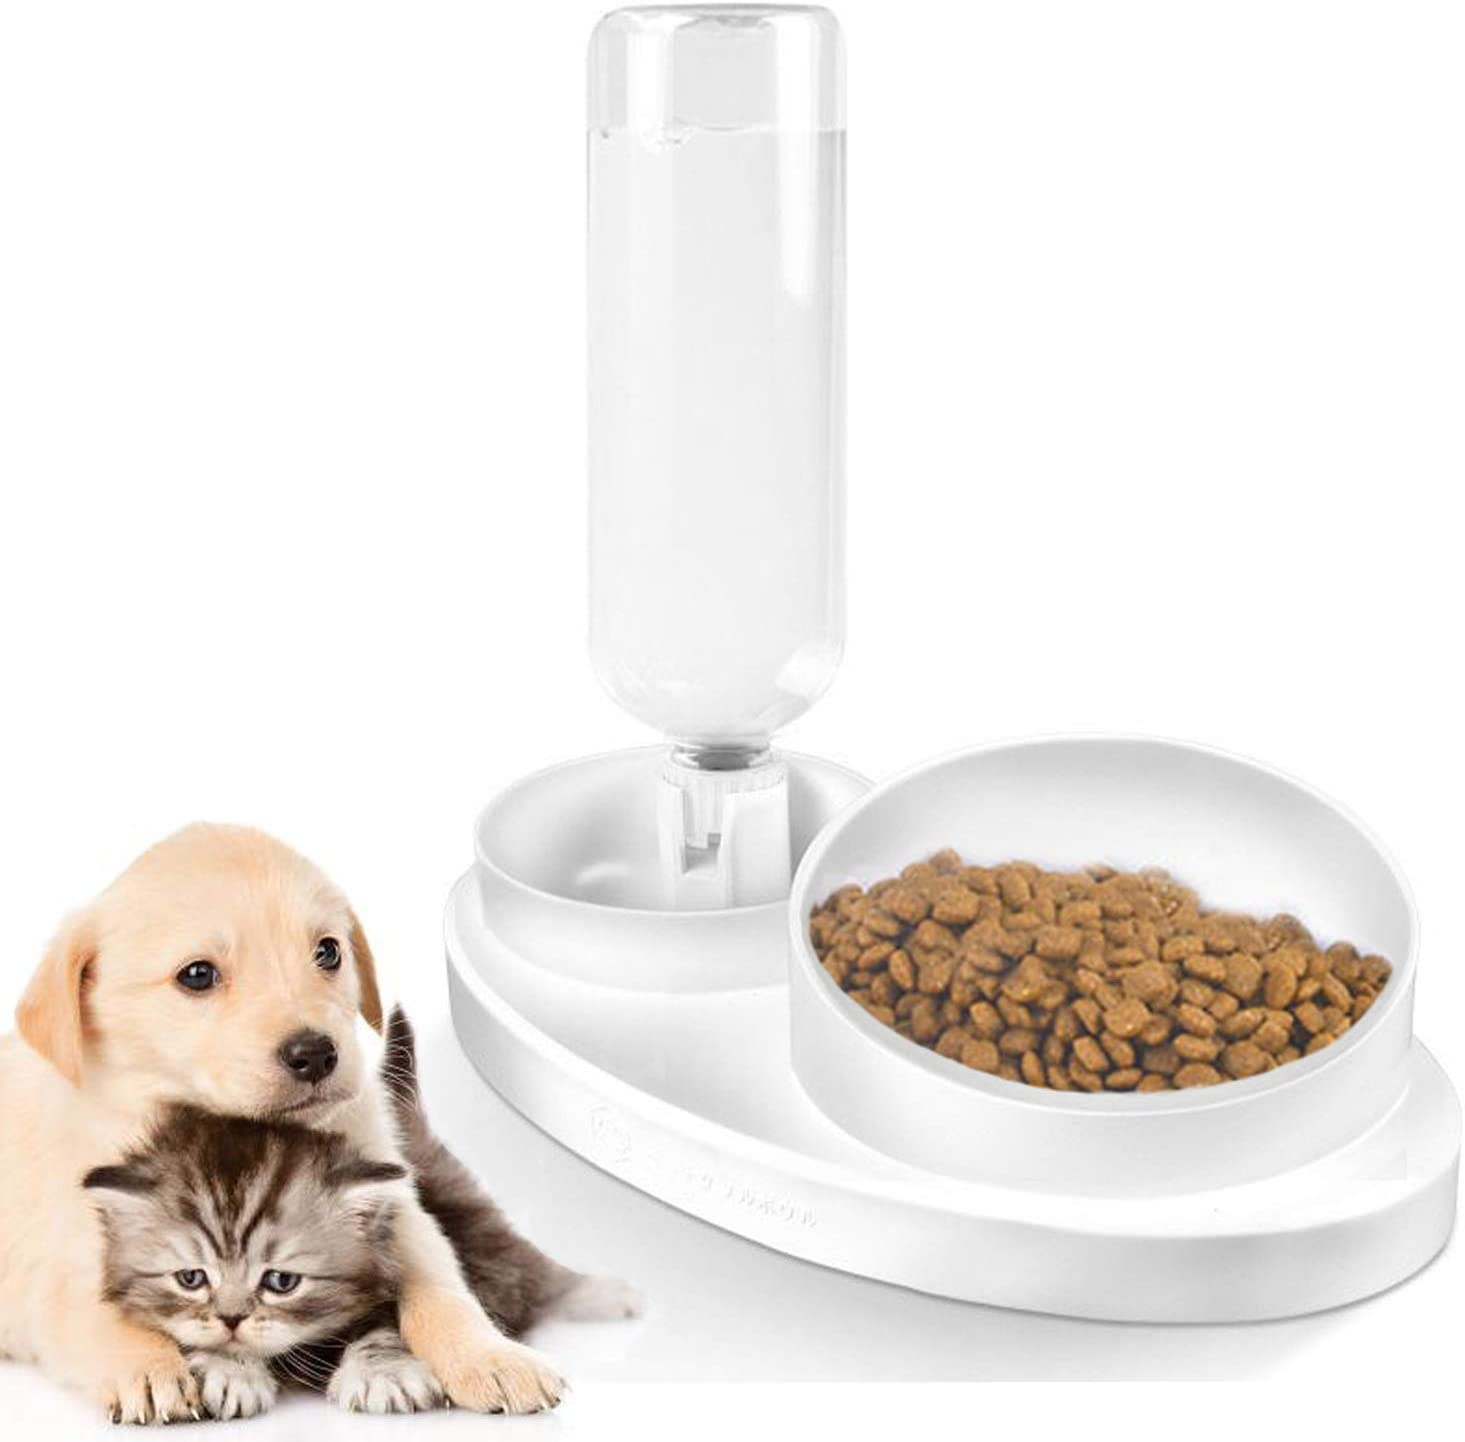 FUNLULA FUNLULA FUNLULA Pets Water and Food Double Bowl Set, Dogs Cats Feeder Bowl and Self-Dispensing Gravity Automatic Waterer Dispenser with Bottle for Dogs Cats Pet Supplies